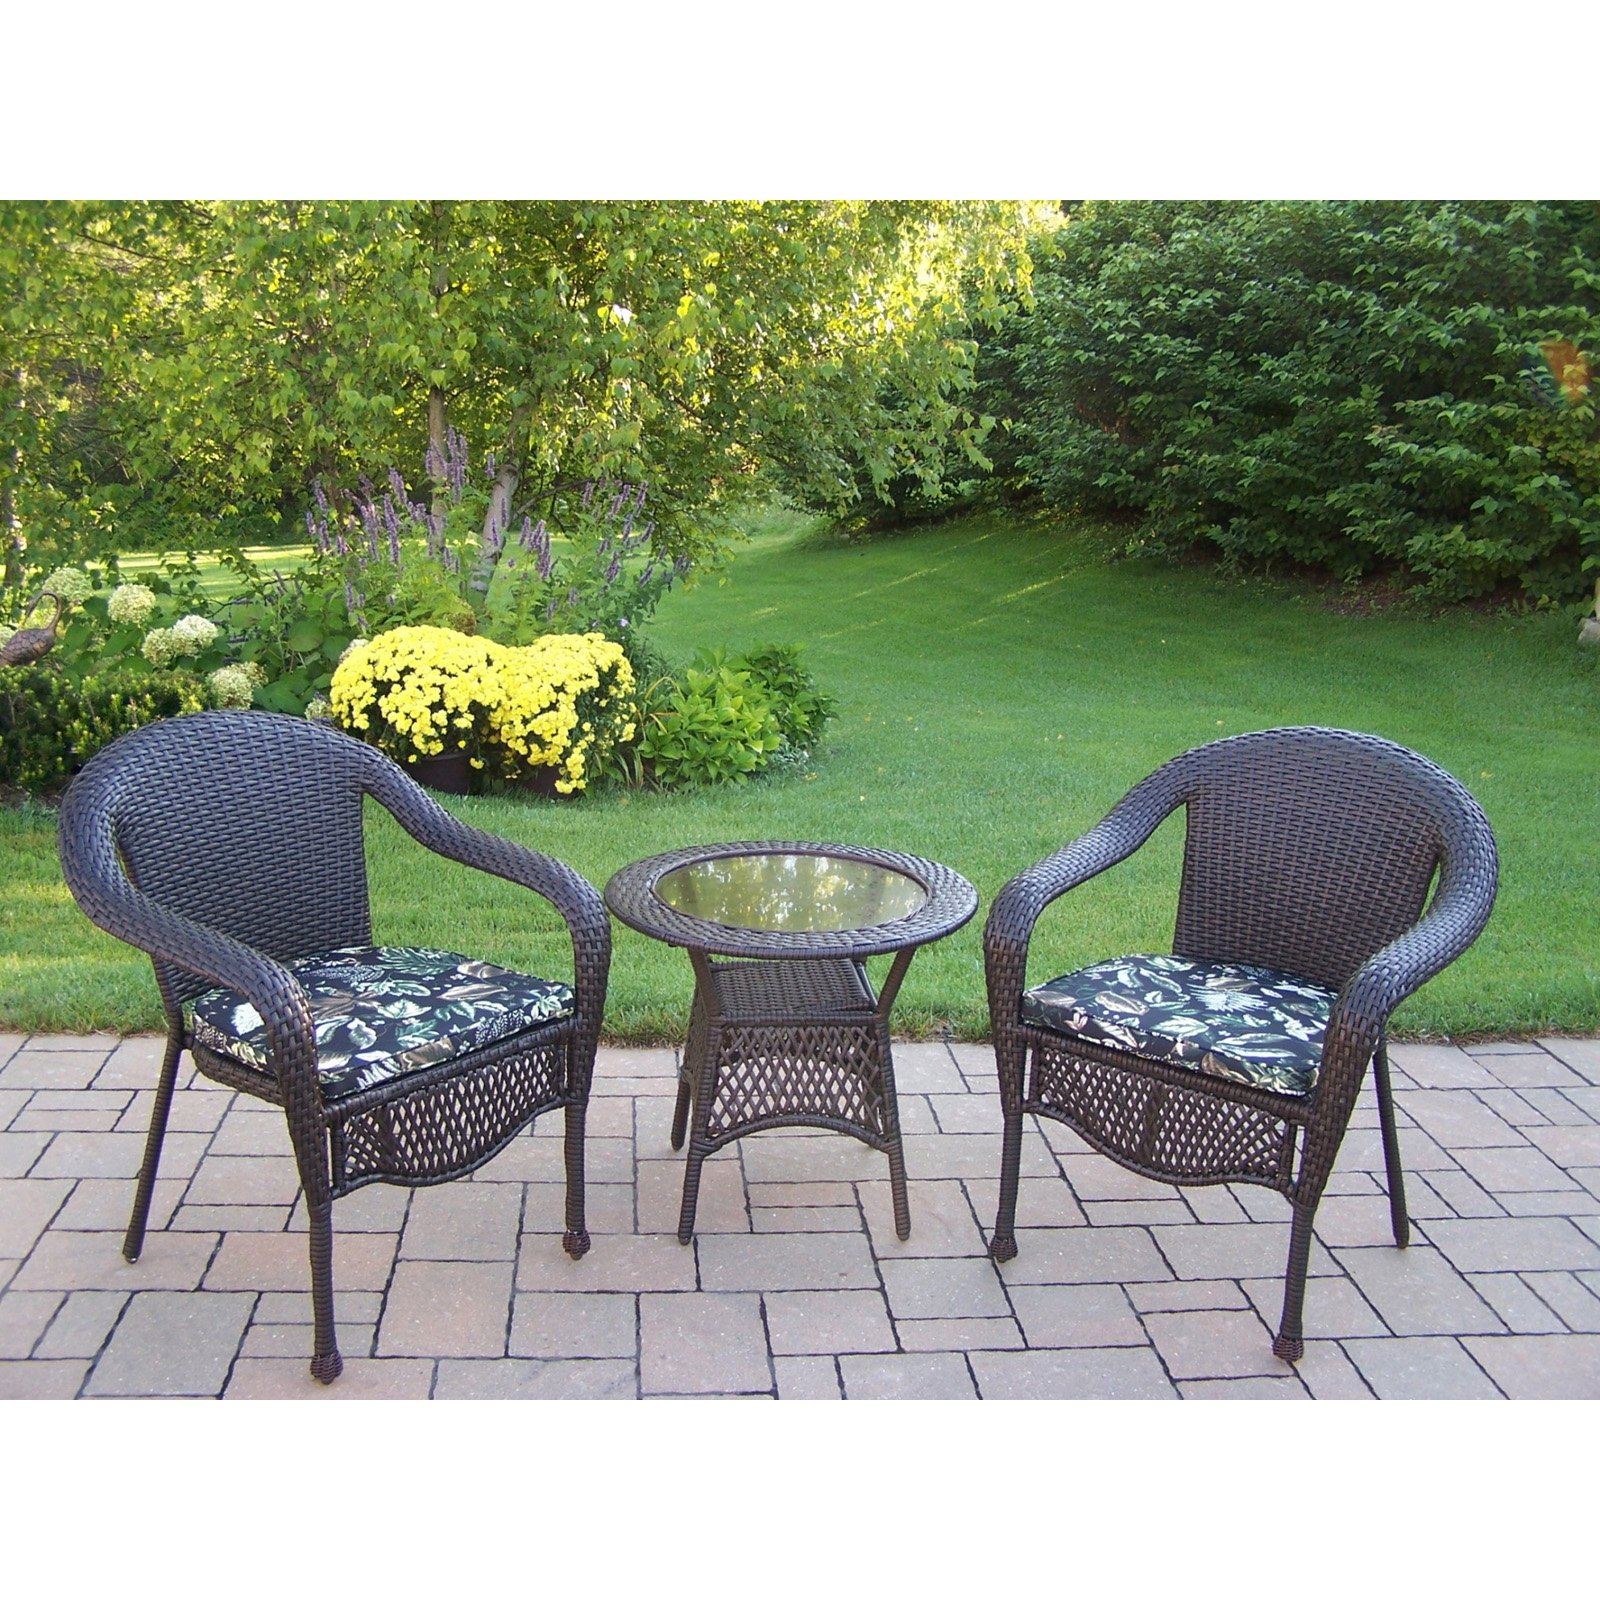 Oakland Living Elite All-Weather Wicker Patio Bistro Set